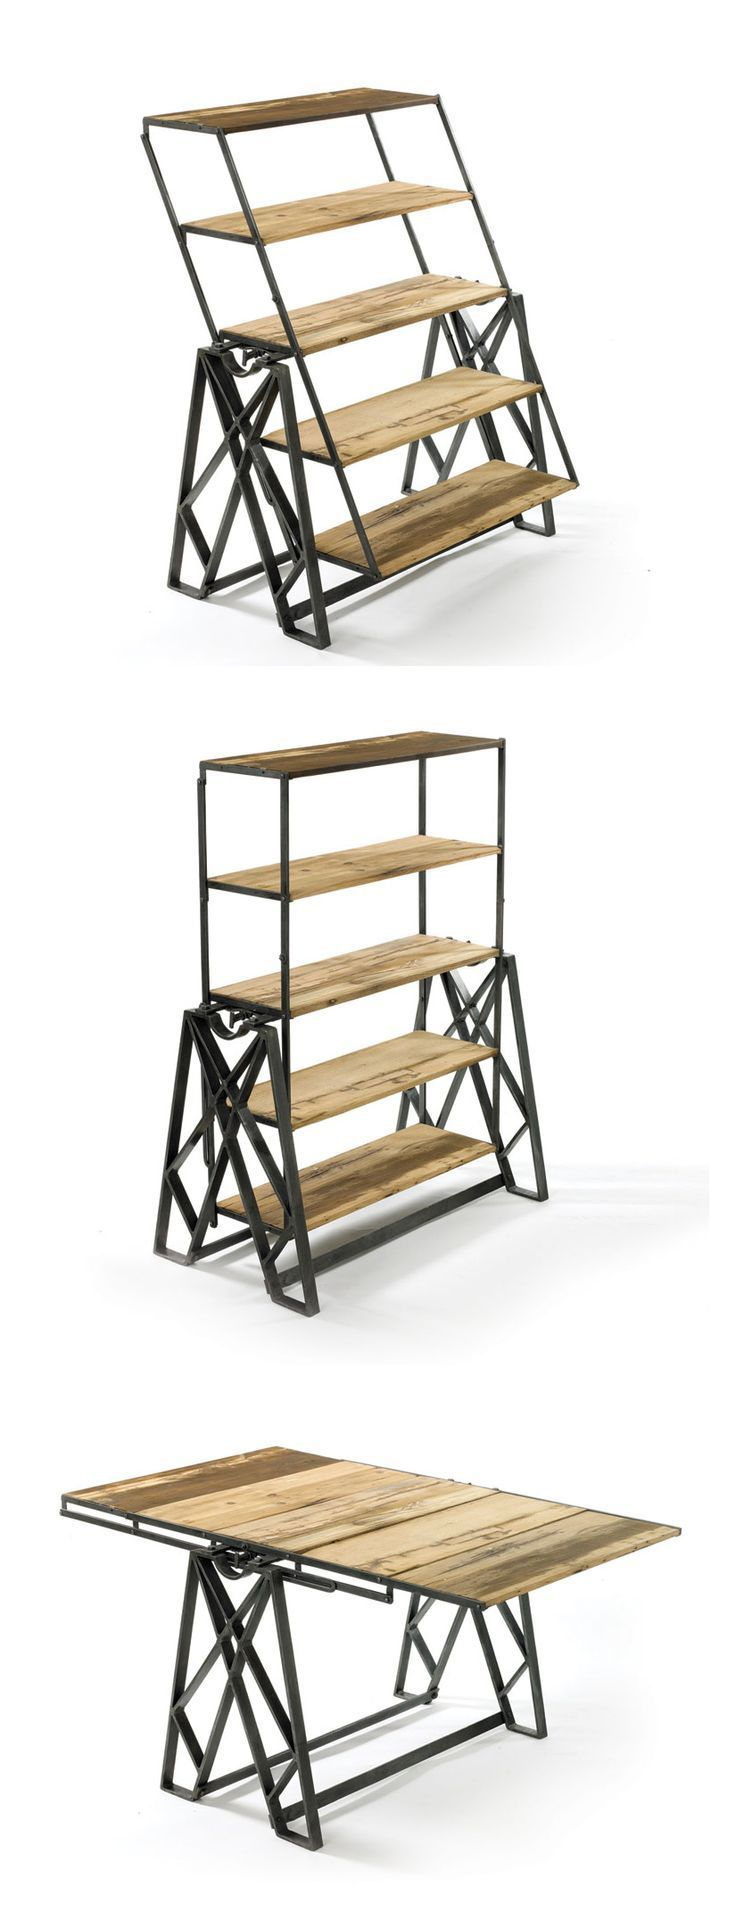 Reclaimed Wood Convertible Shelf Table-- only, what's the point of shelves that have to be cleared before each table use?